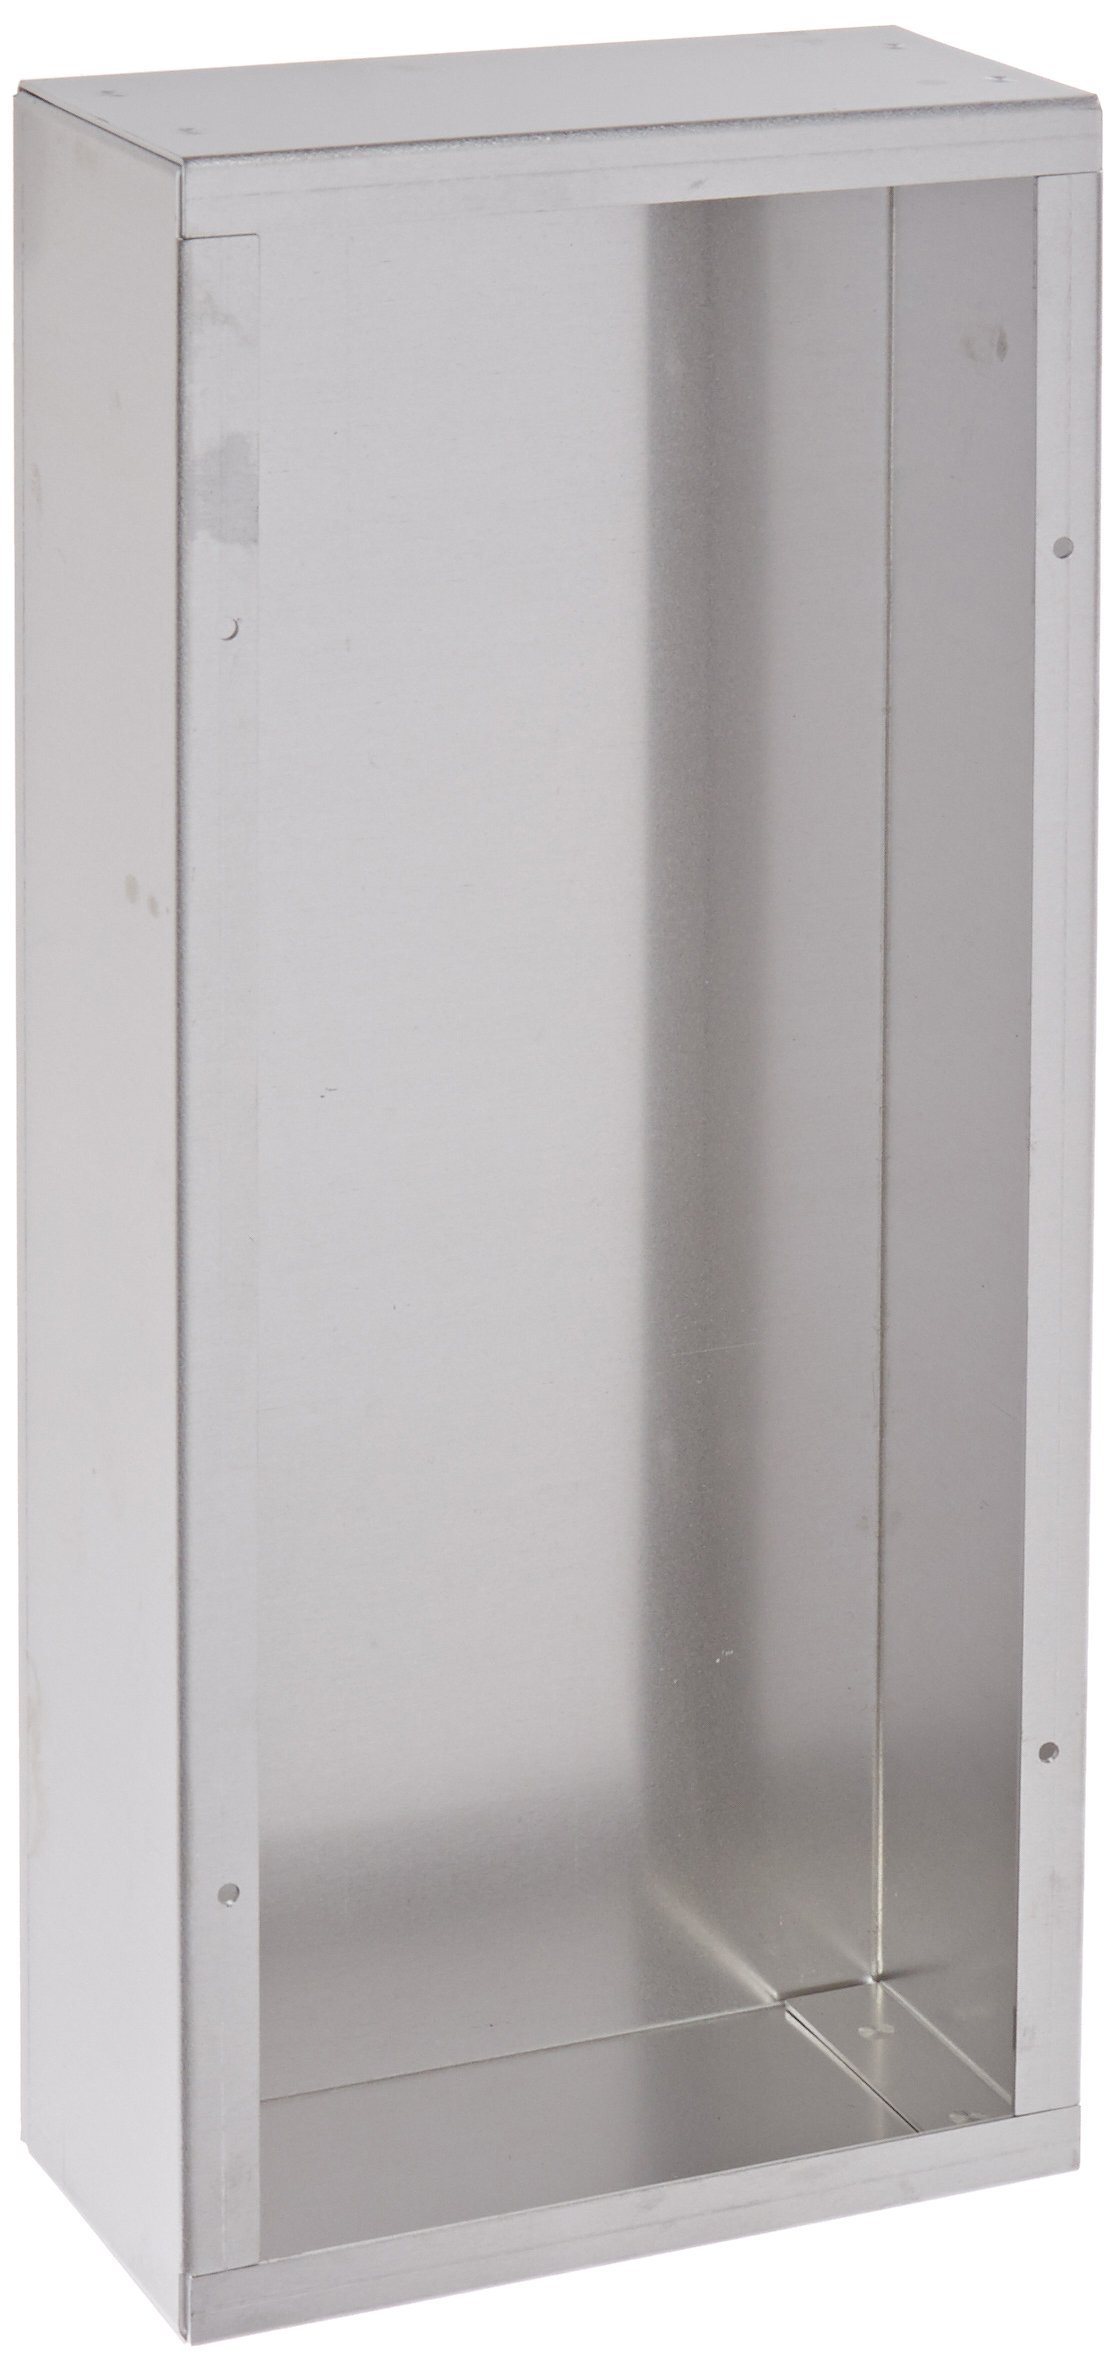 BUD Industries AC-1414 Aluminum Chassis, 14'' Length x 6'' Width x 3'' Height, Natural Finish